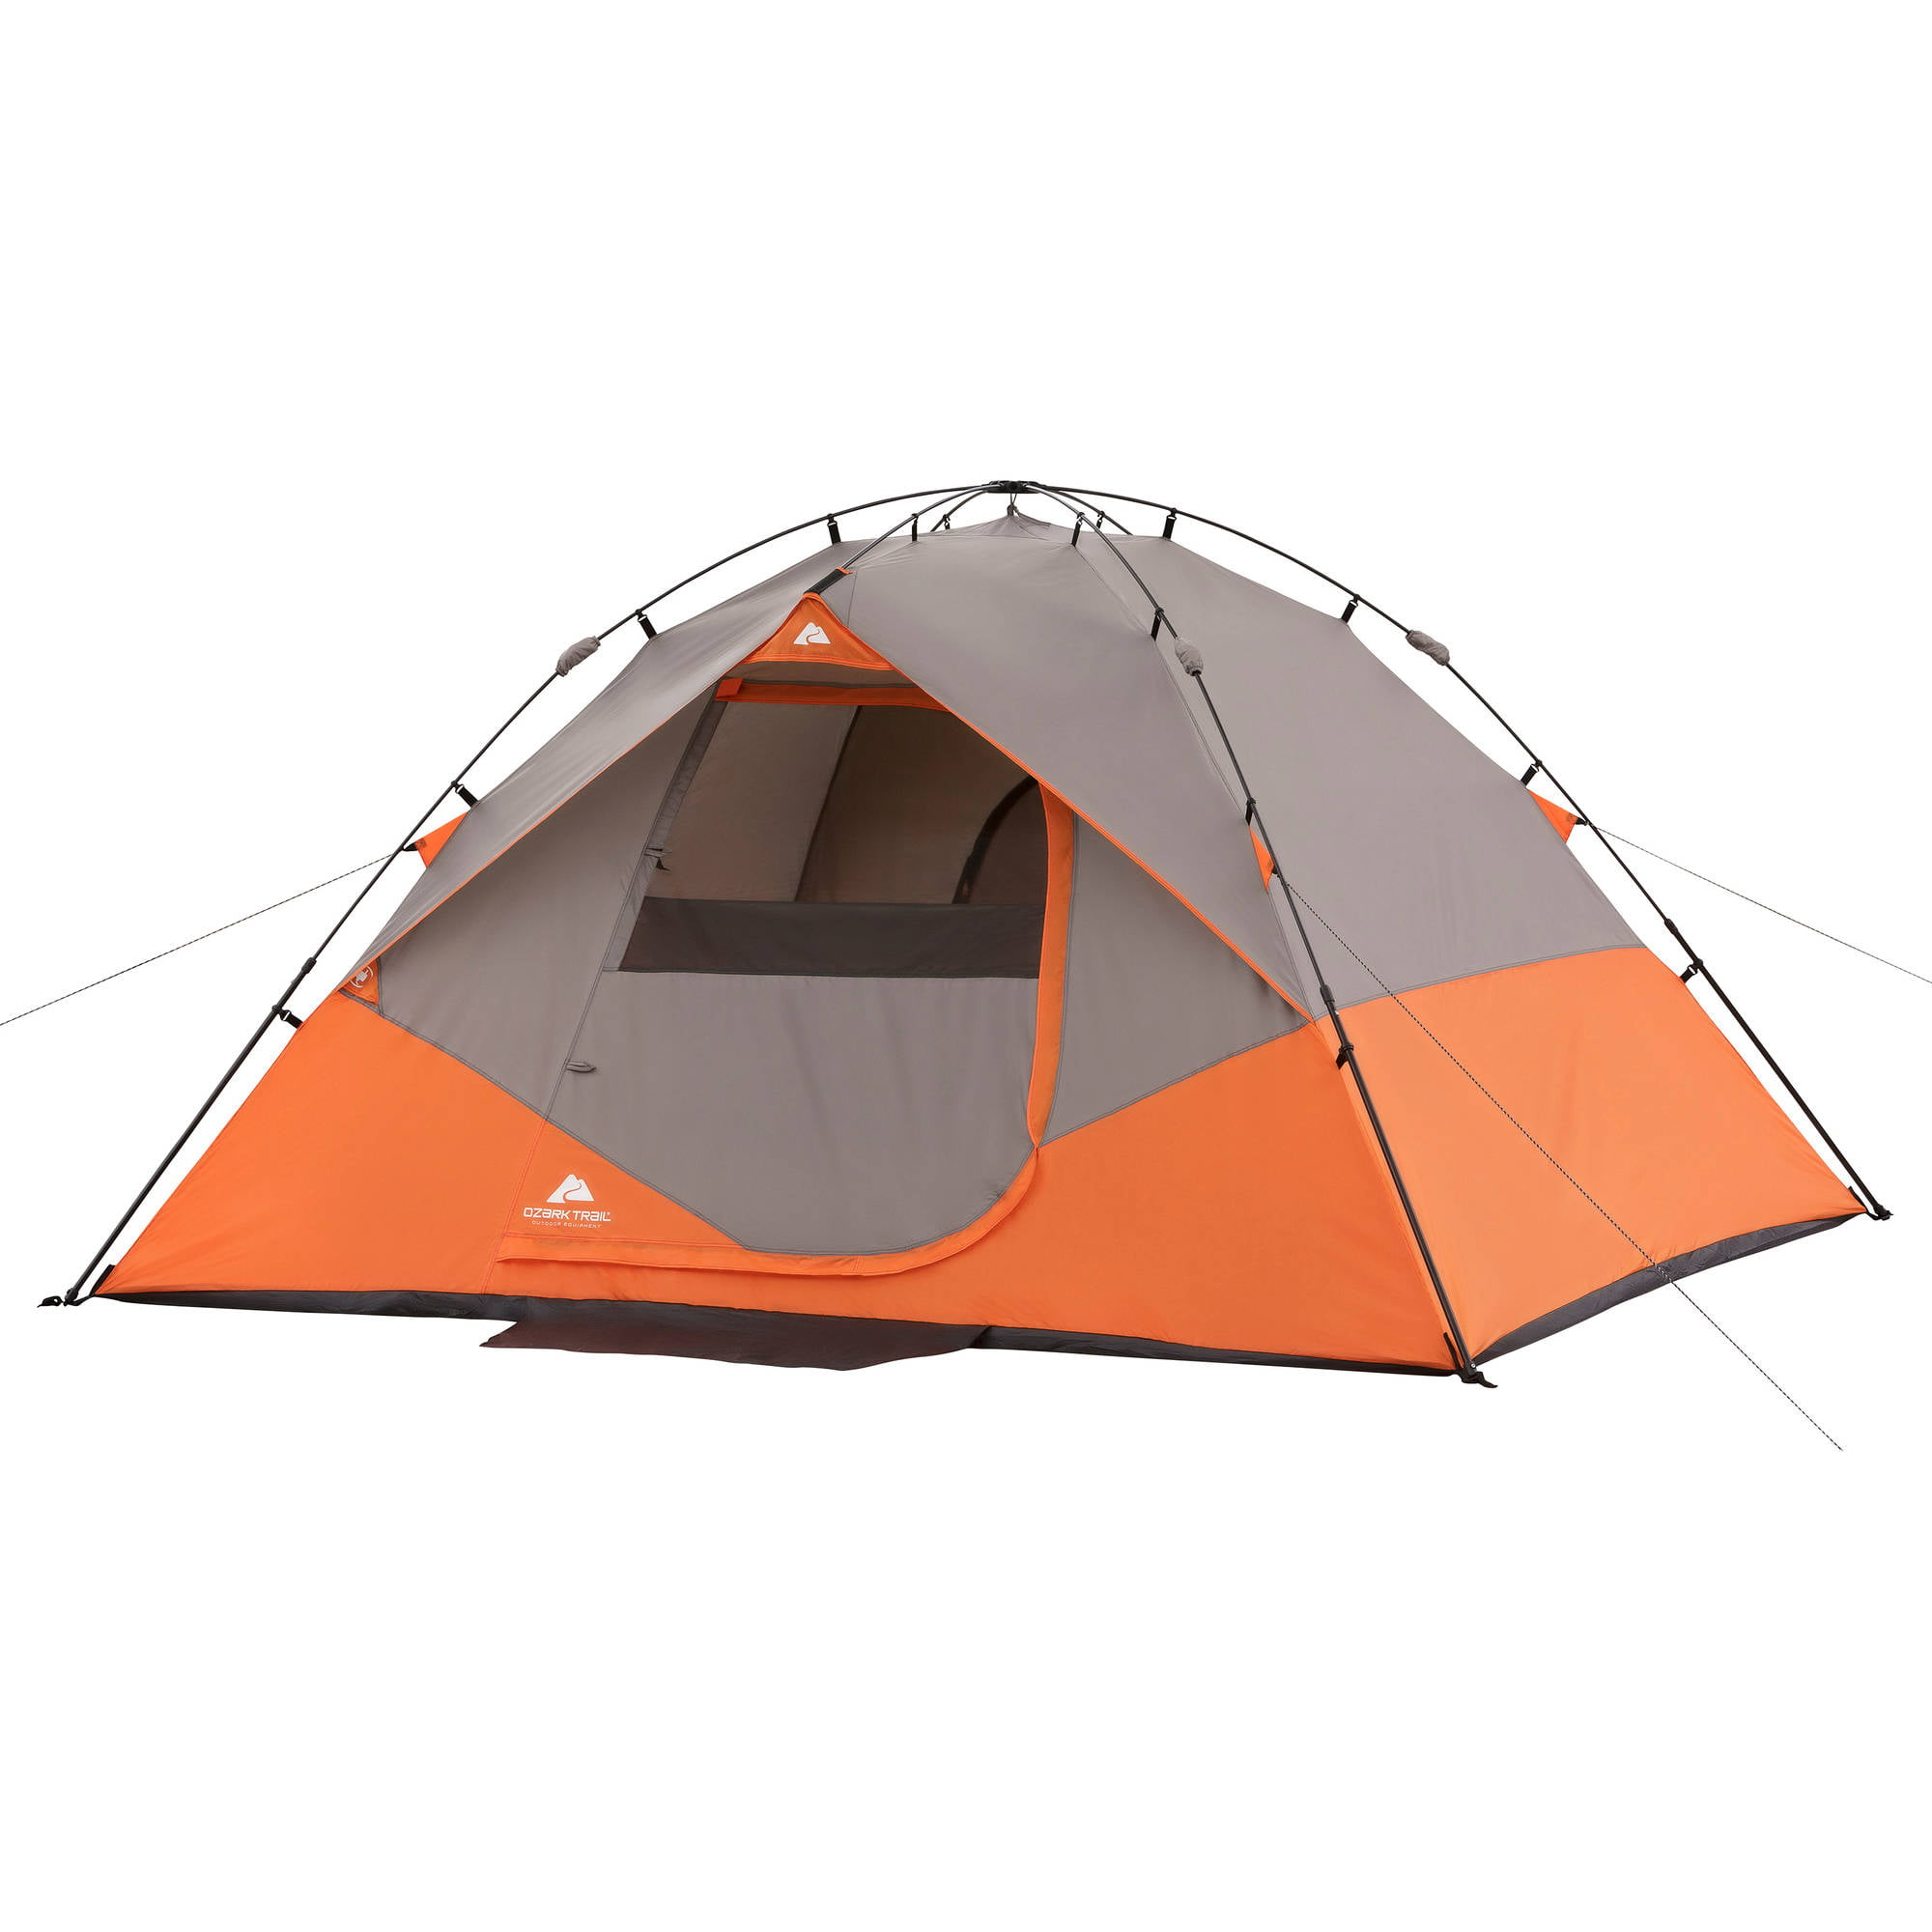 sc 1 st  Walmart : ozark trail tents 6 person - memphite.com